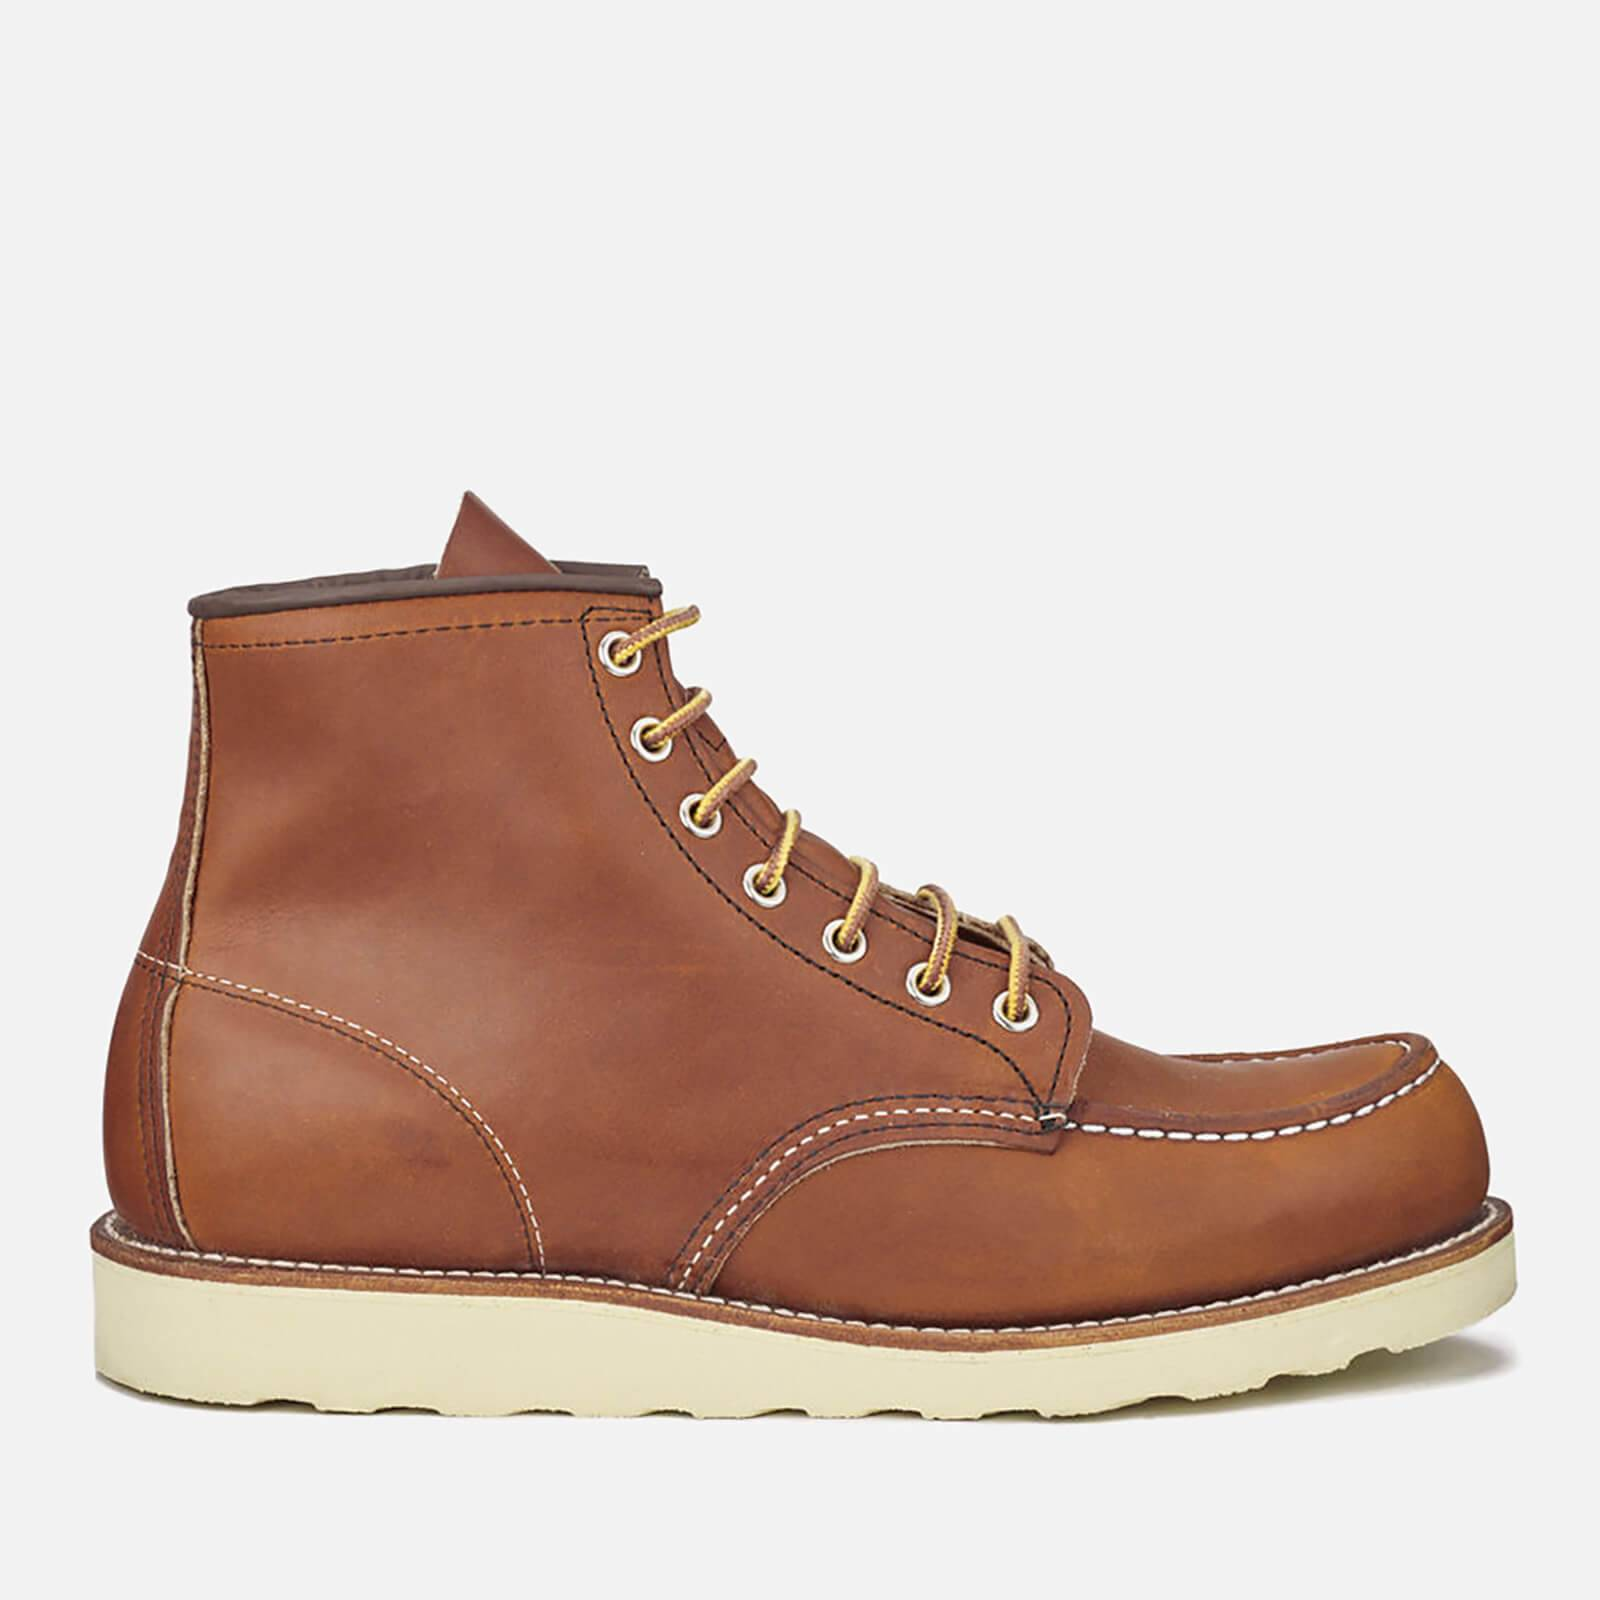 Red Wing Men's 6 Inch Moc Toe Leather Lace Up Boots - Oro Legacy - UK 11/US 12